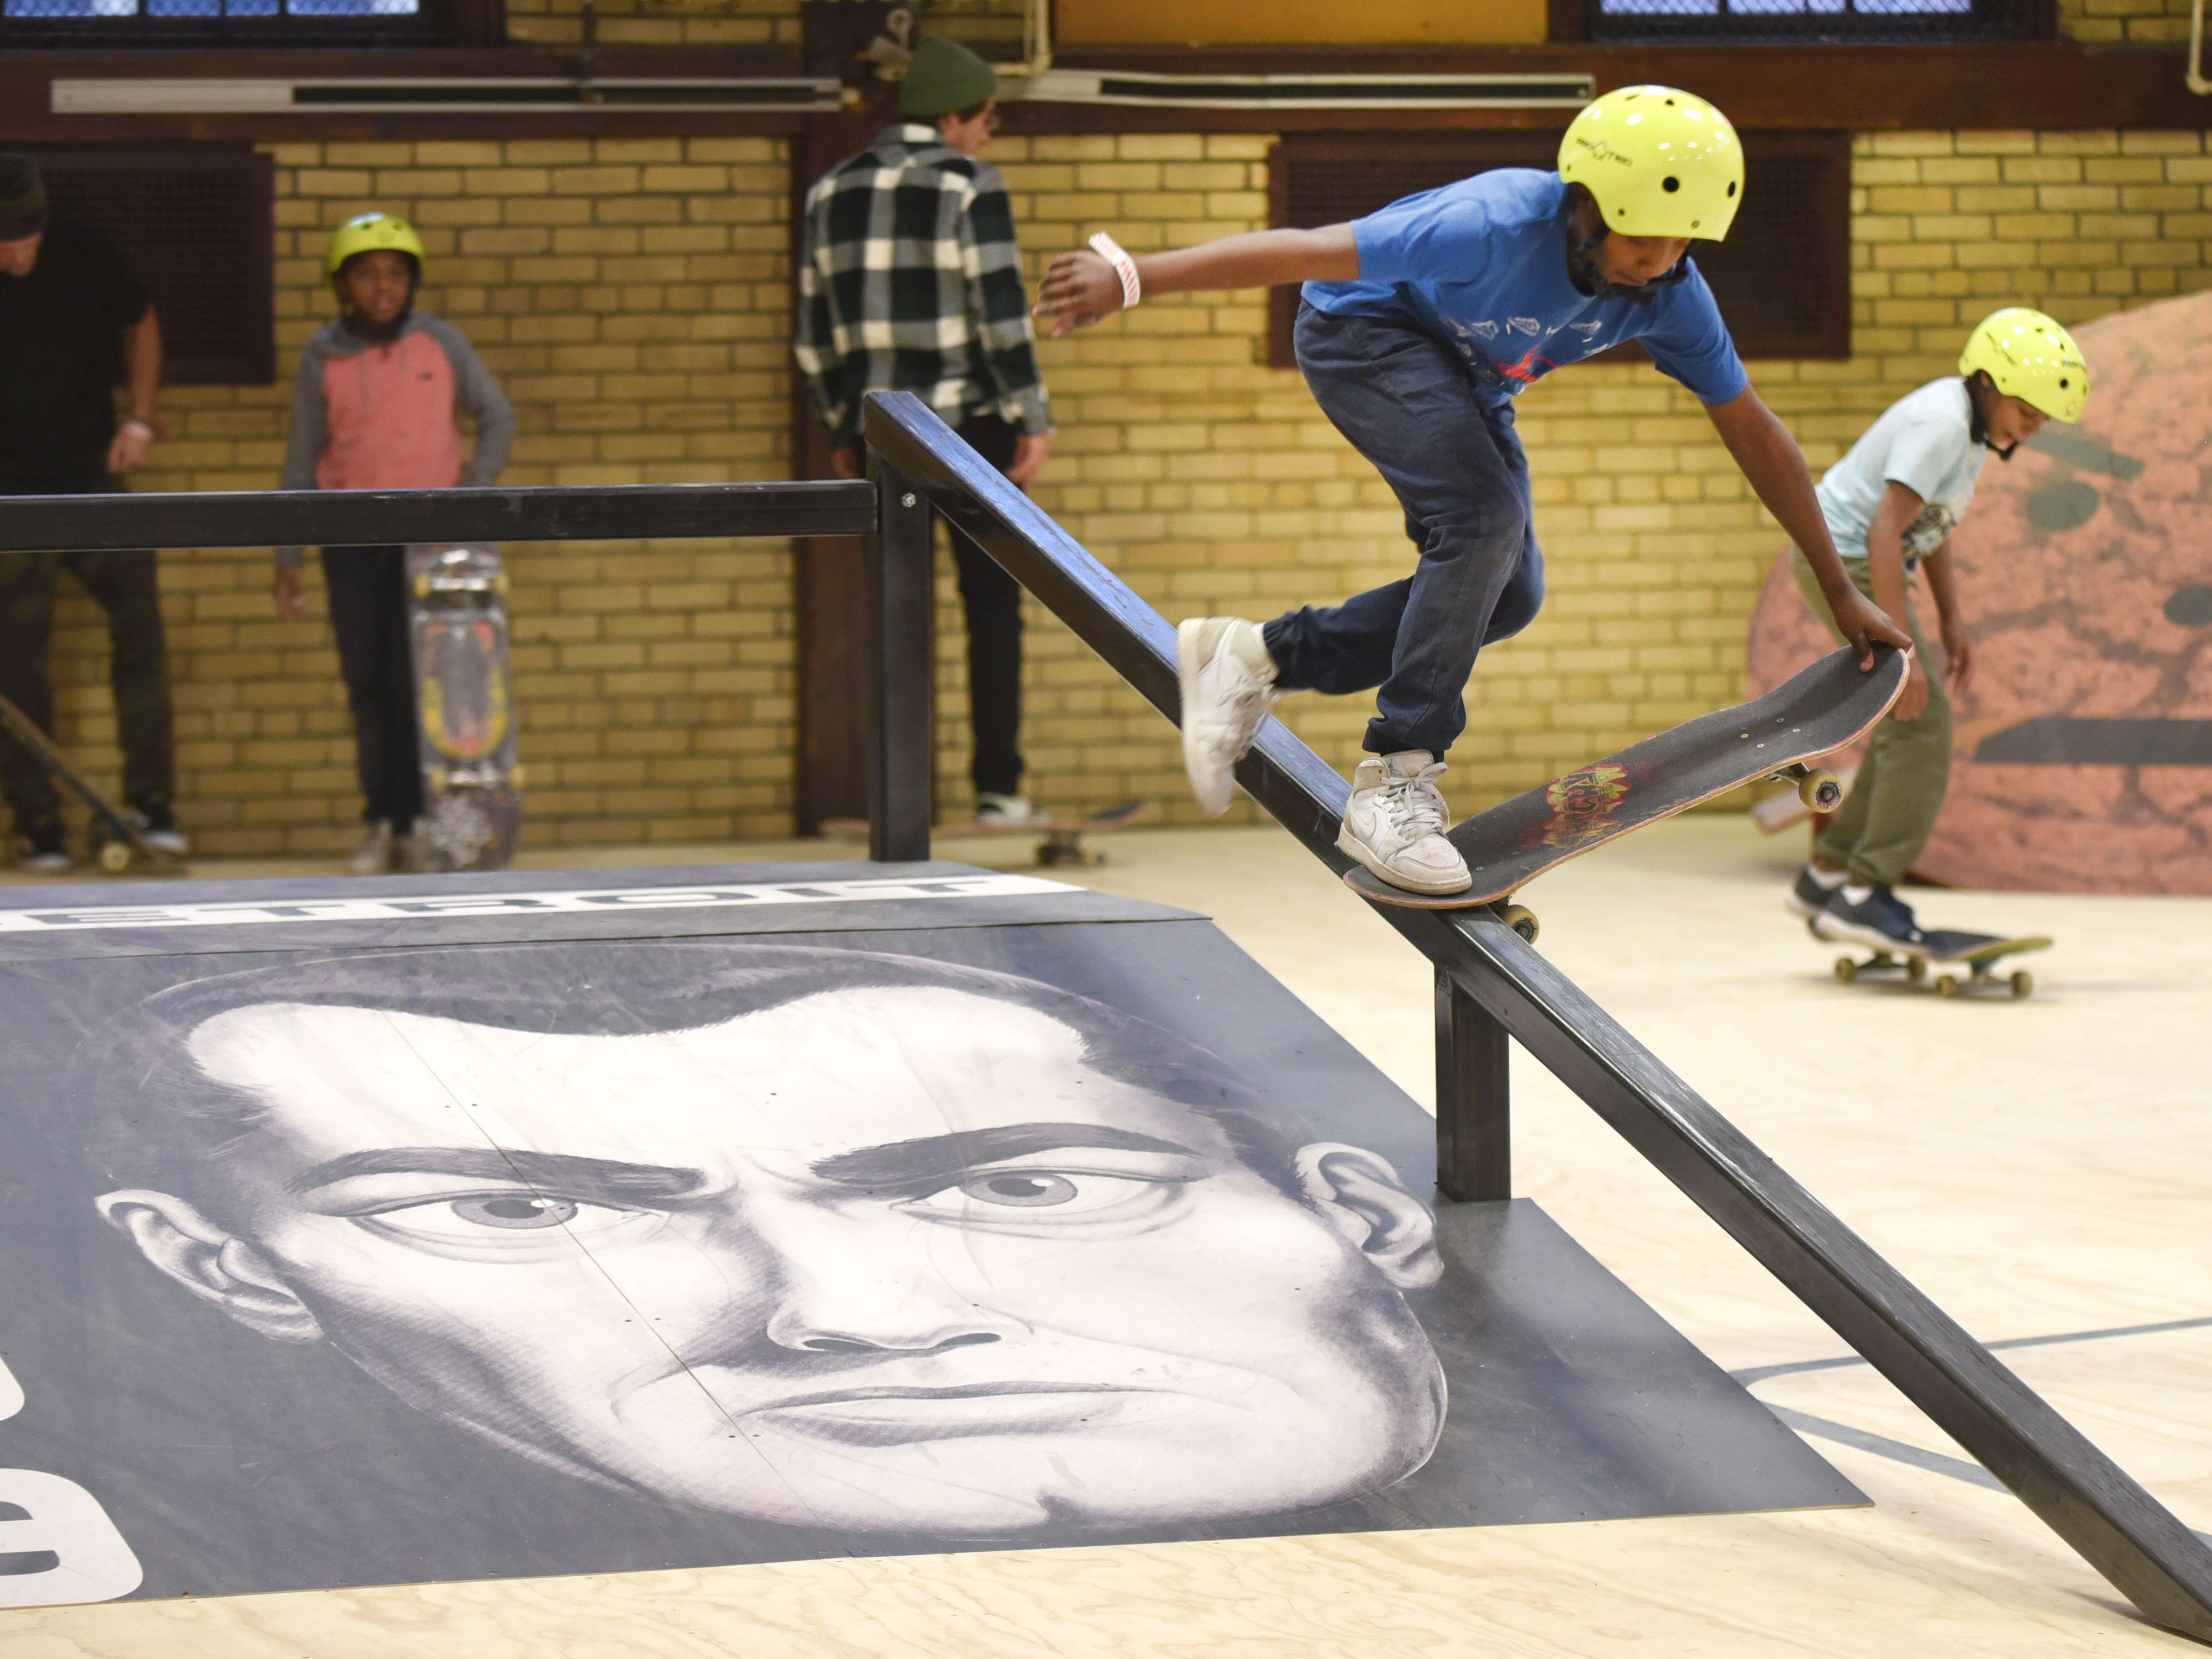 Rashad Wright of Detroit works a trick inside a custom skating rink with ramps at the House of Vans pop-up event.